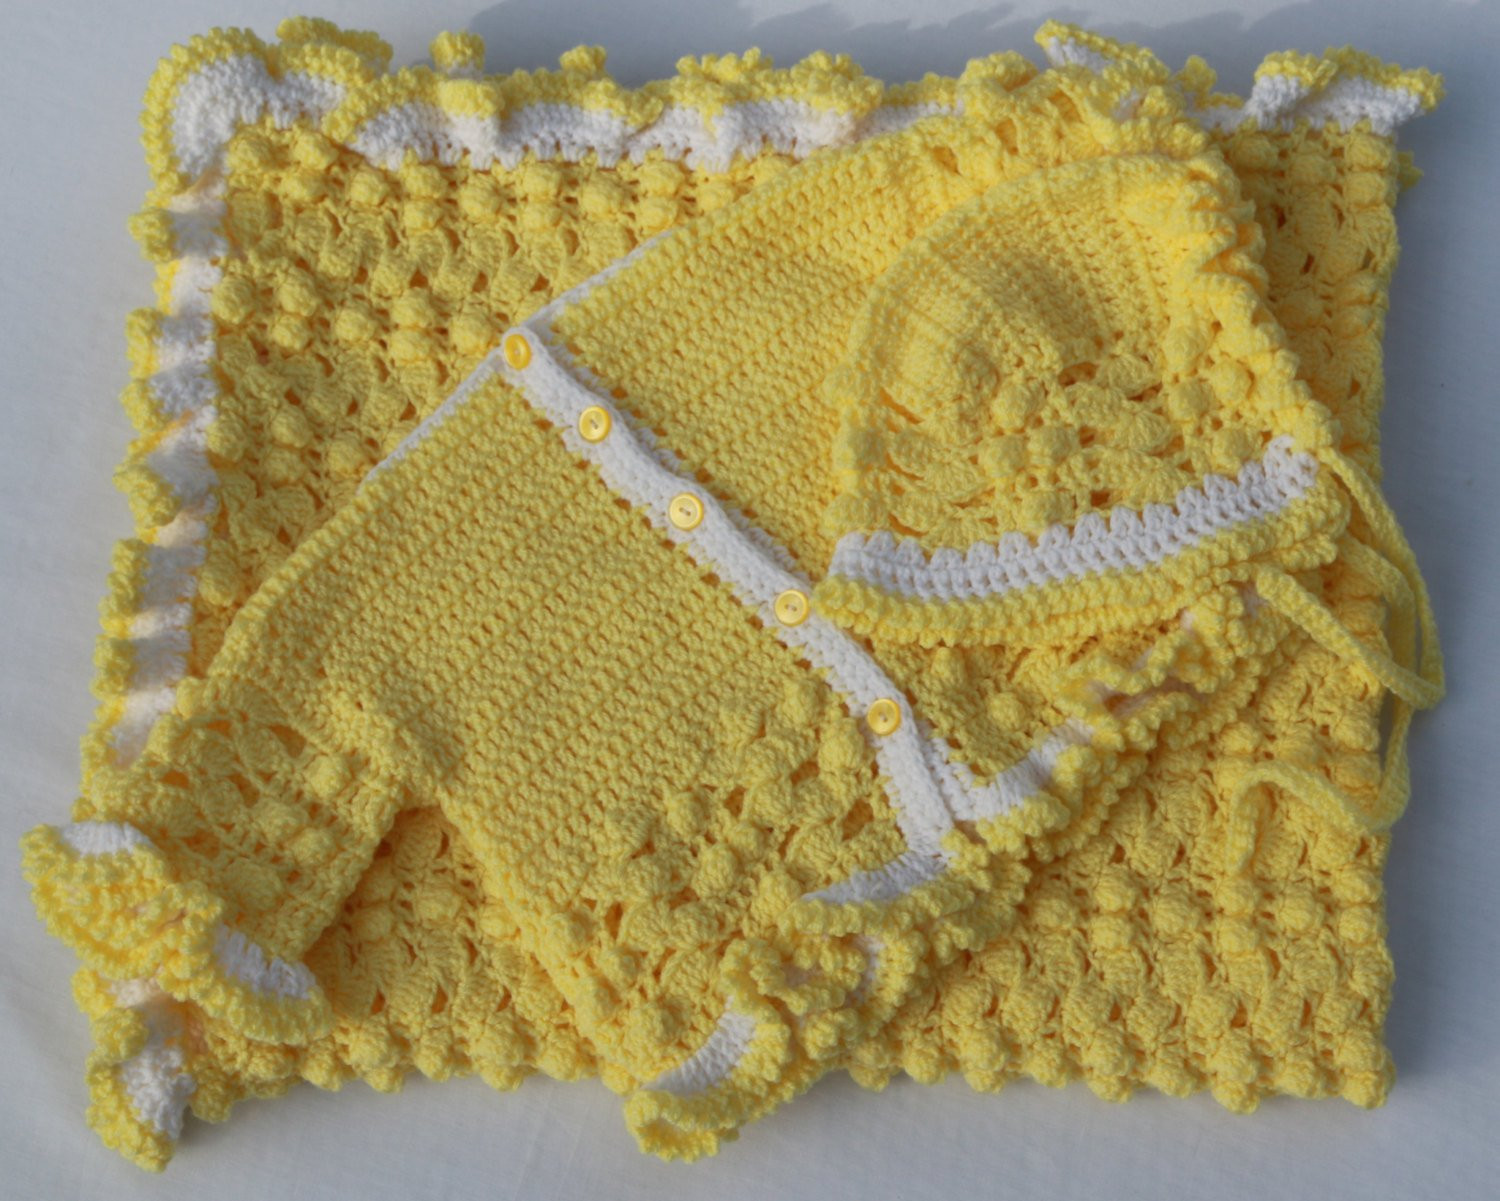 Crochet Business Name Ideas New Baby Blanket Crochet Blanket Yellow Baby Blanket Baby Of Wonderful 48 Images Crochet Business Name Ideas